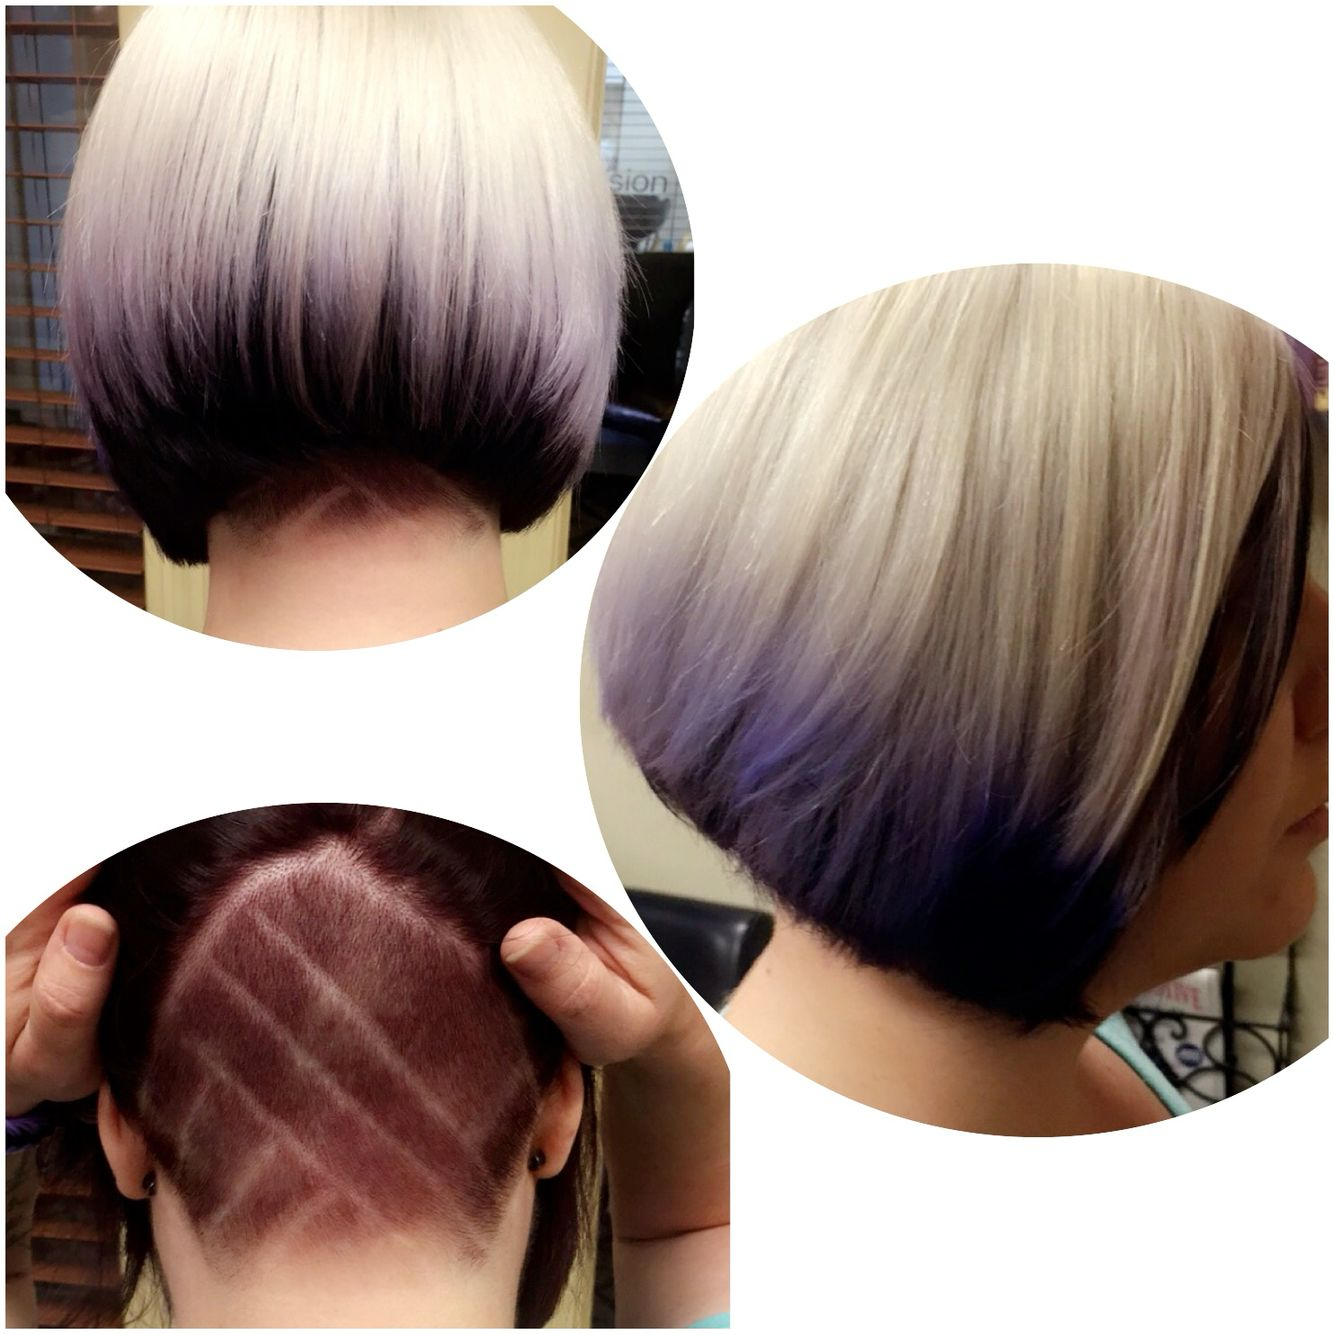 bleached blonde align with purple tips and shaved underneath with